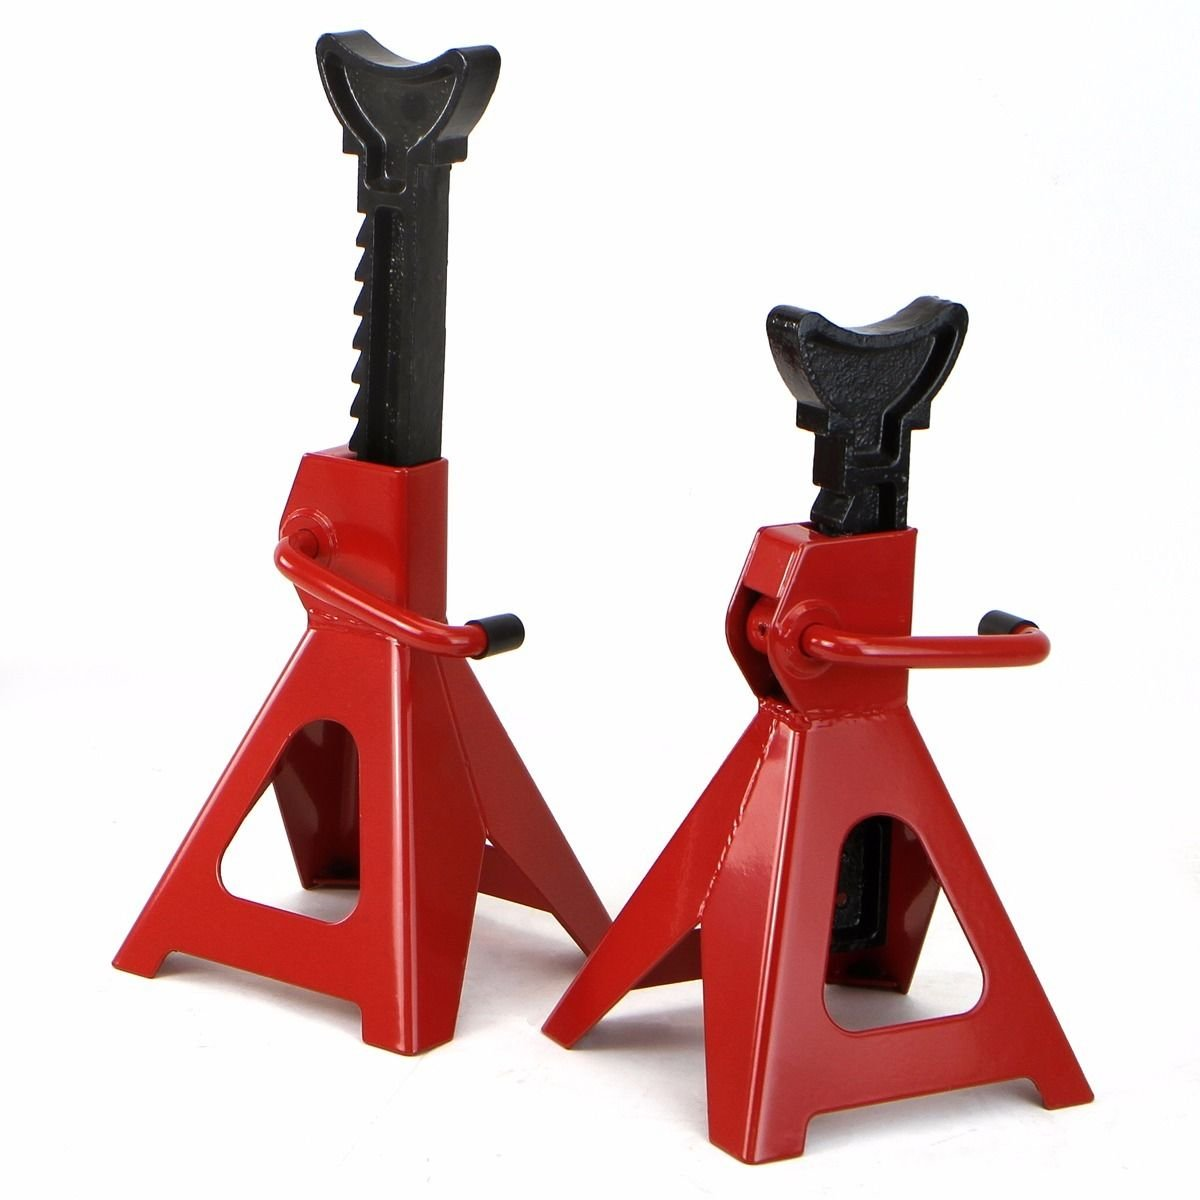 NEW Pair of 3 Ton Jack Stands Adjustable Height Auto Shop Safety Tools Car Truck